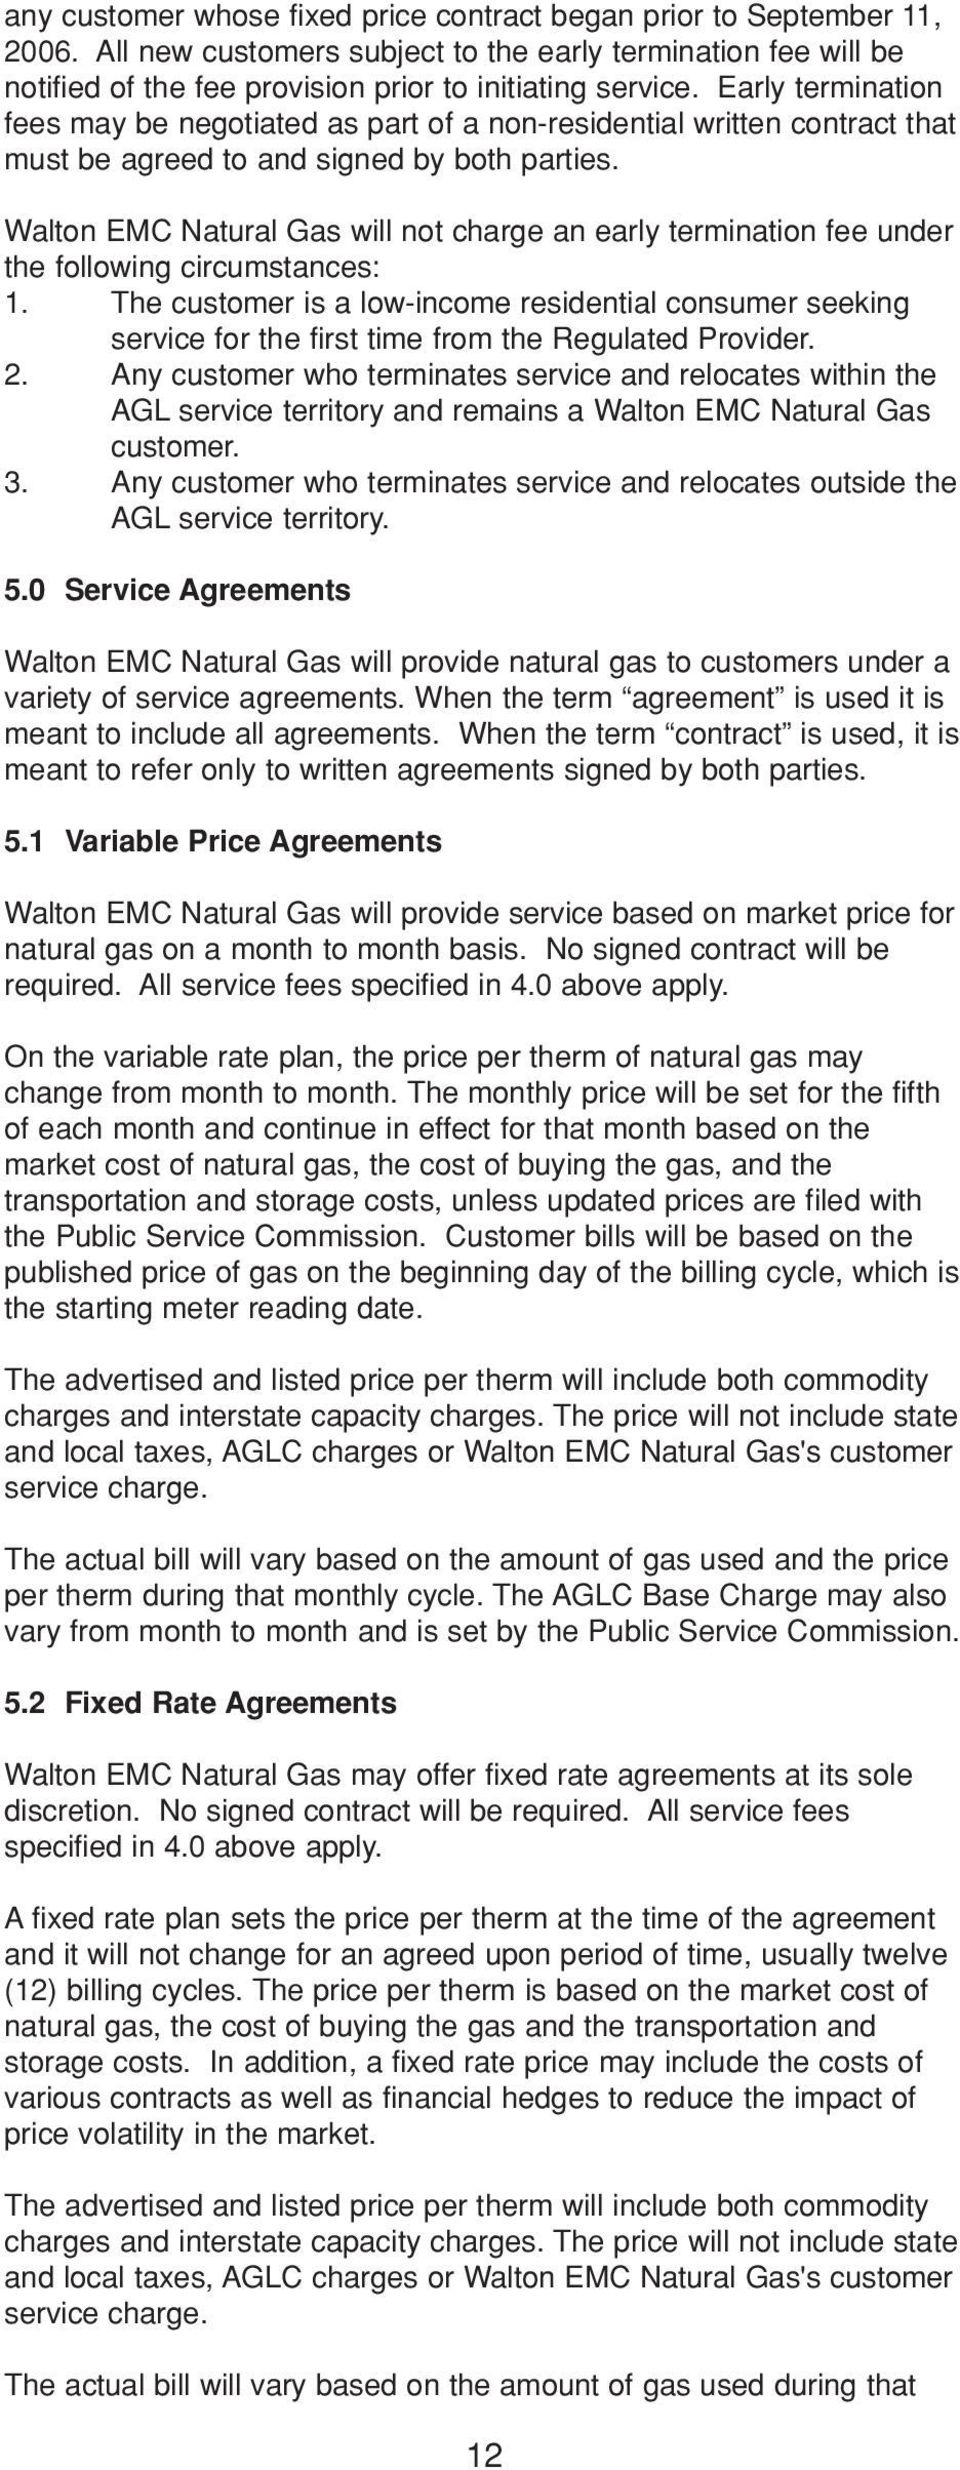 Walton EMC Natural Gas will not charge an early termination fee under the following circumstances: 1.